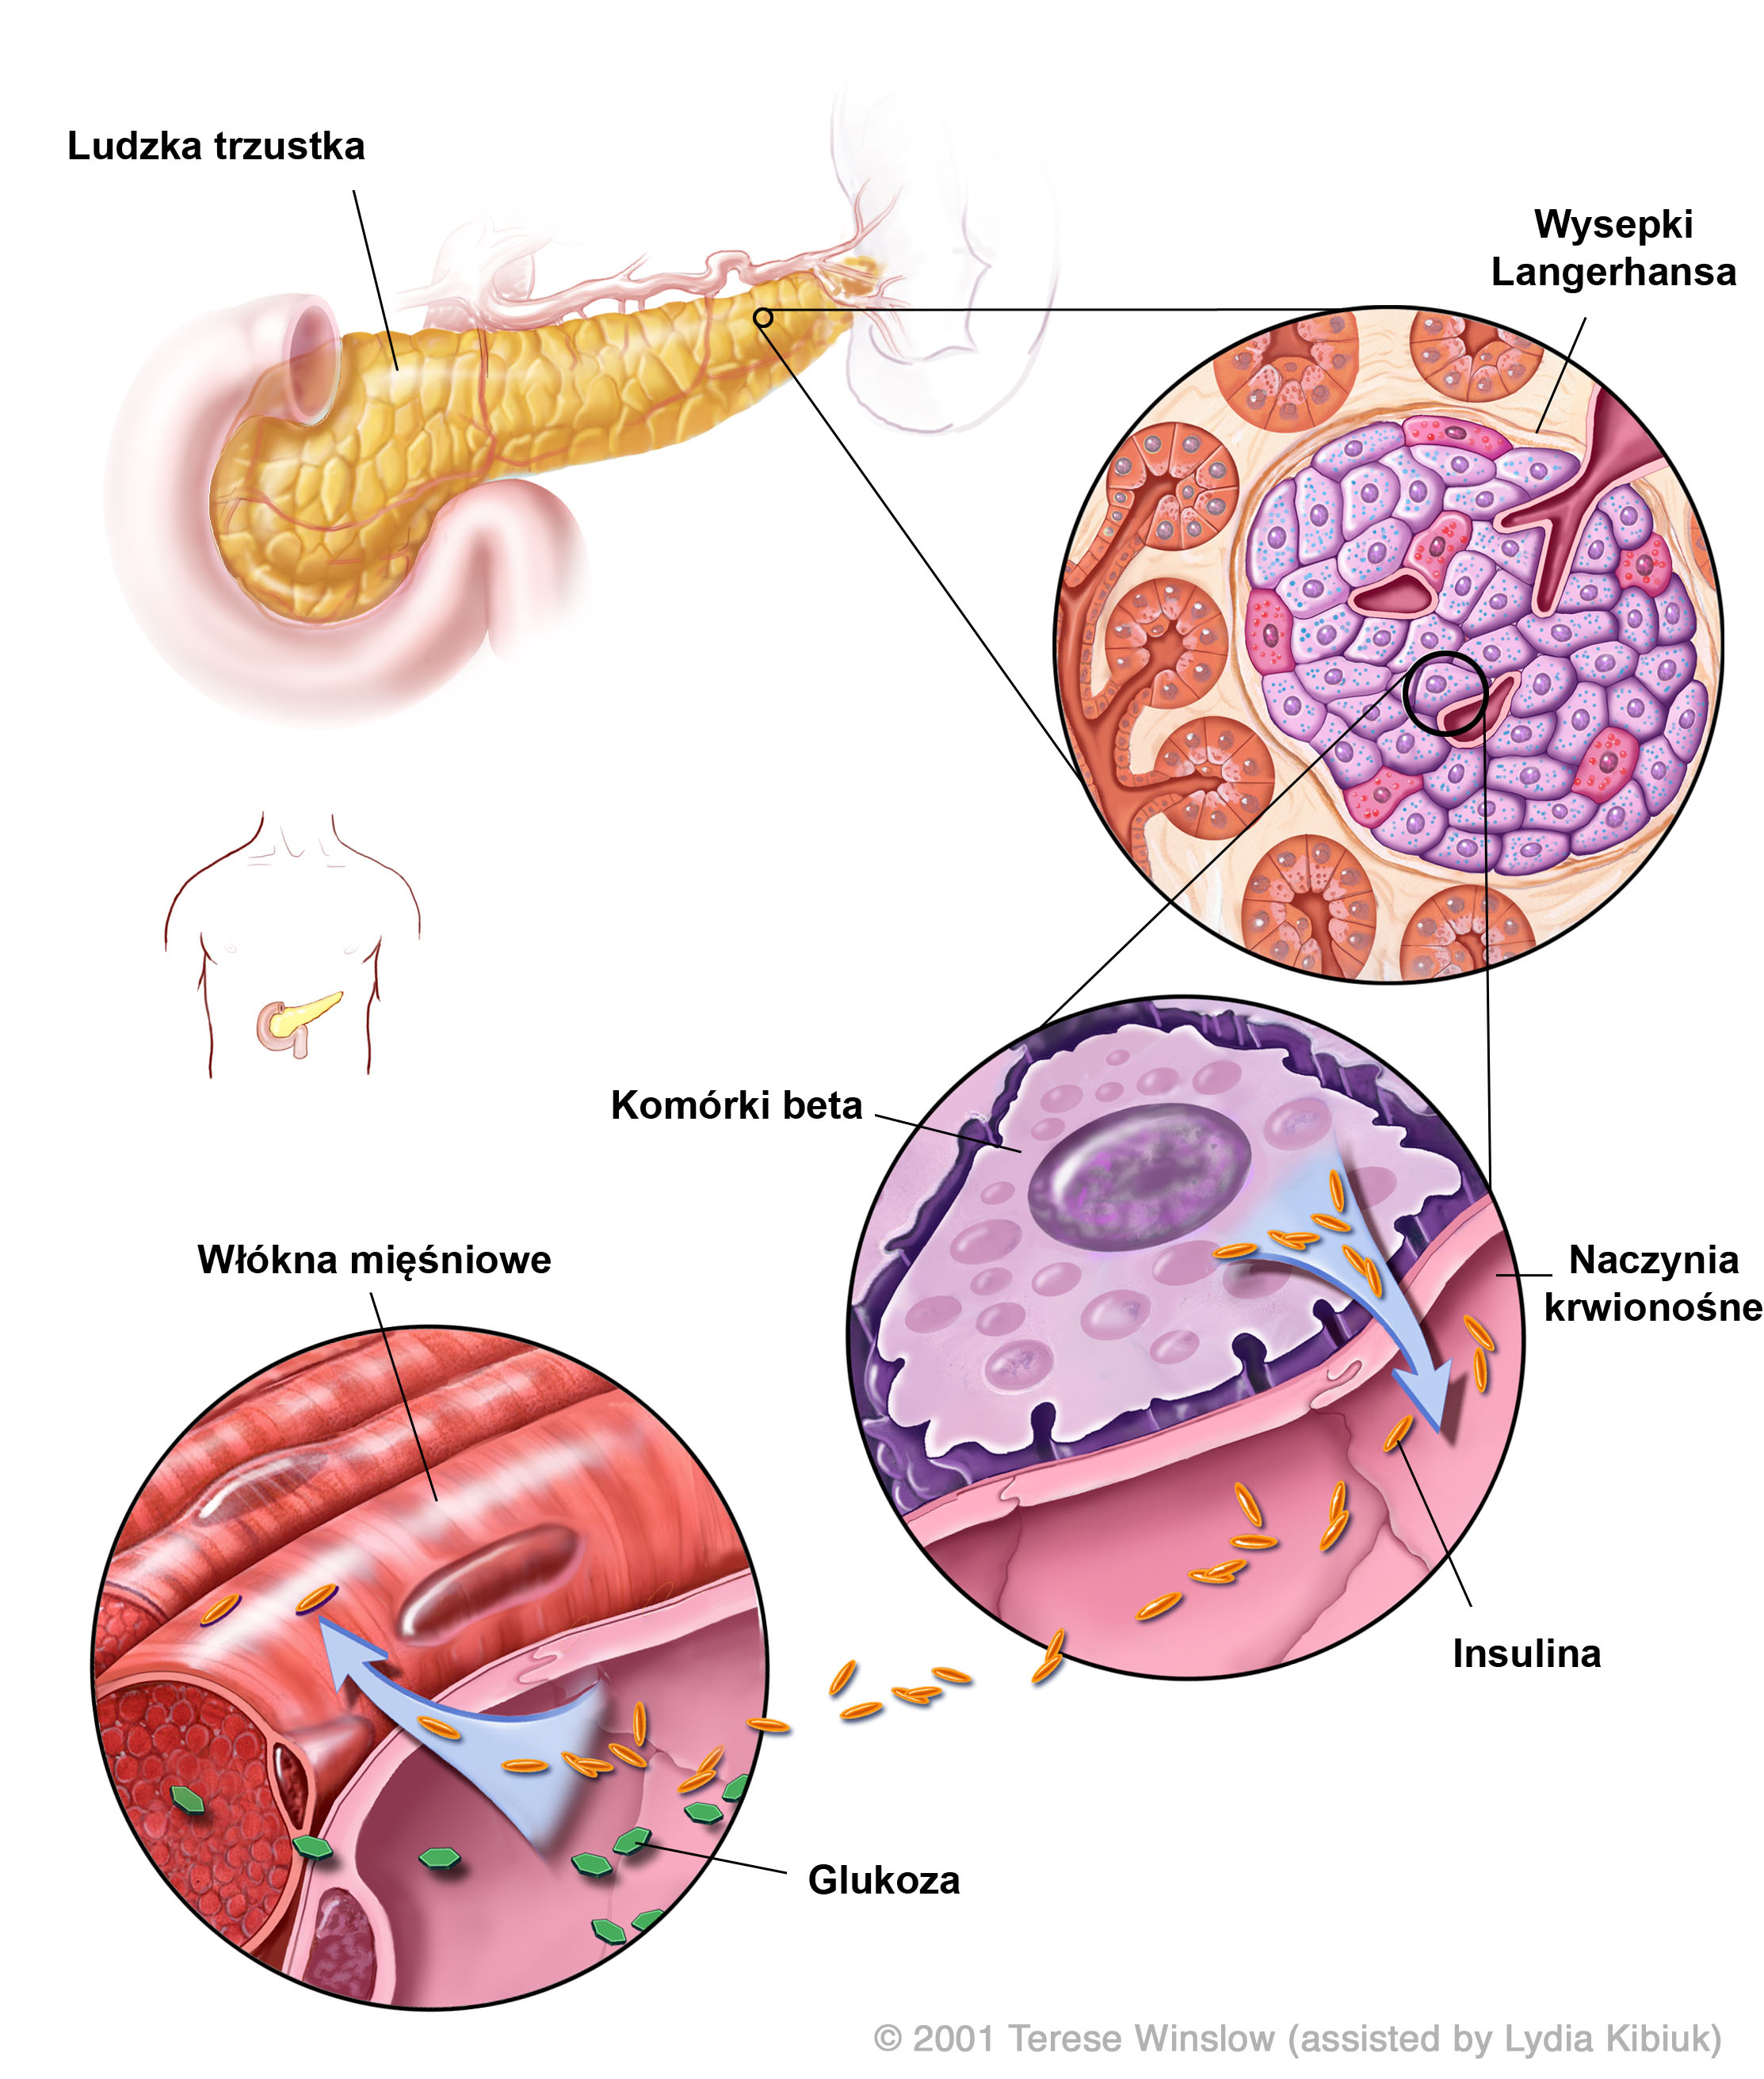 'Insulin Production in the Human Pancreas' diagram